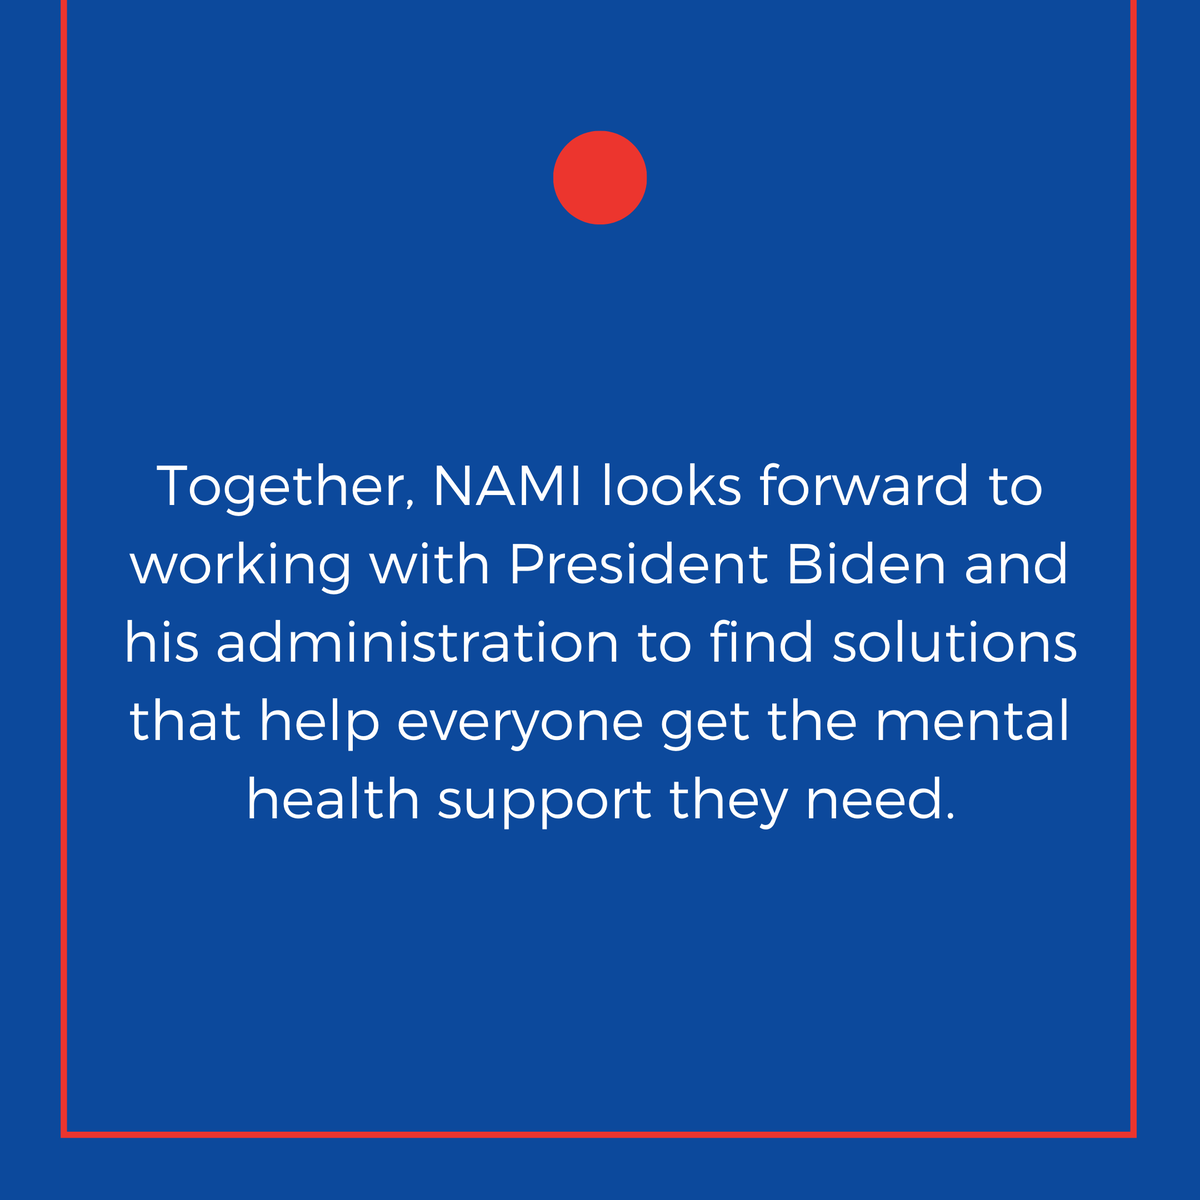 Congratulations President @JoeBiden and Vice President @KamalaHarris on your inauguration today. We look forward to working with the new administration to build better lives for the millions of people in our country who are affected by mental illness. bit.ly/393nBuF